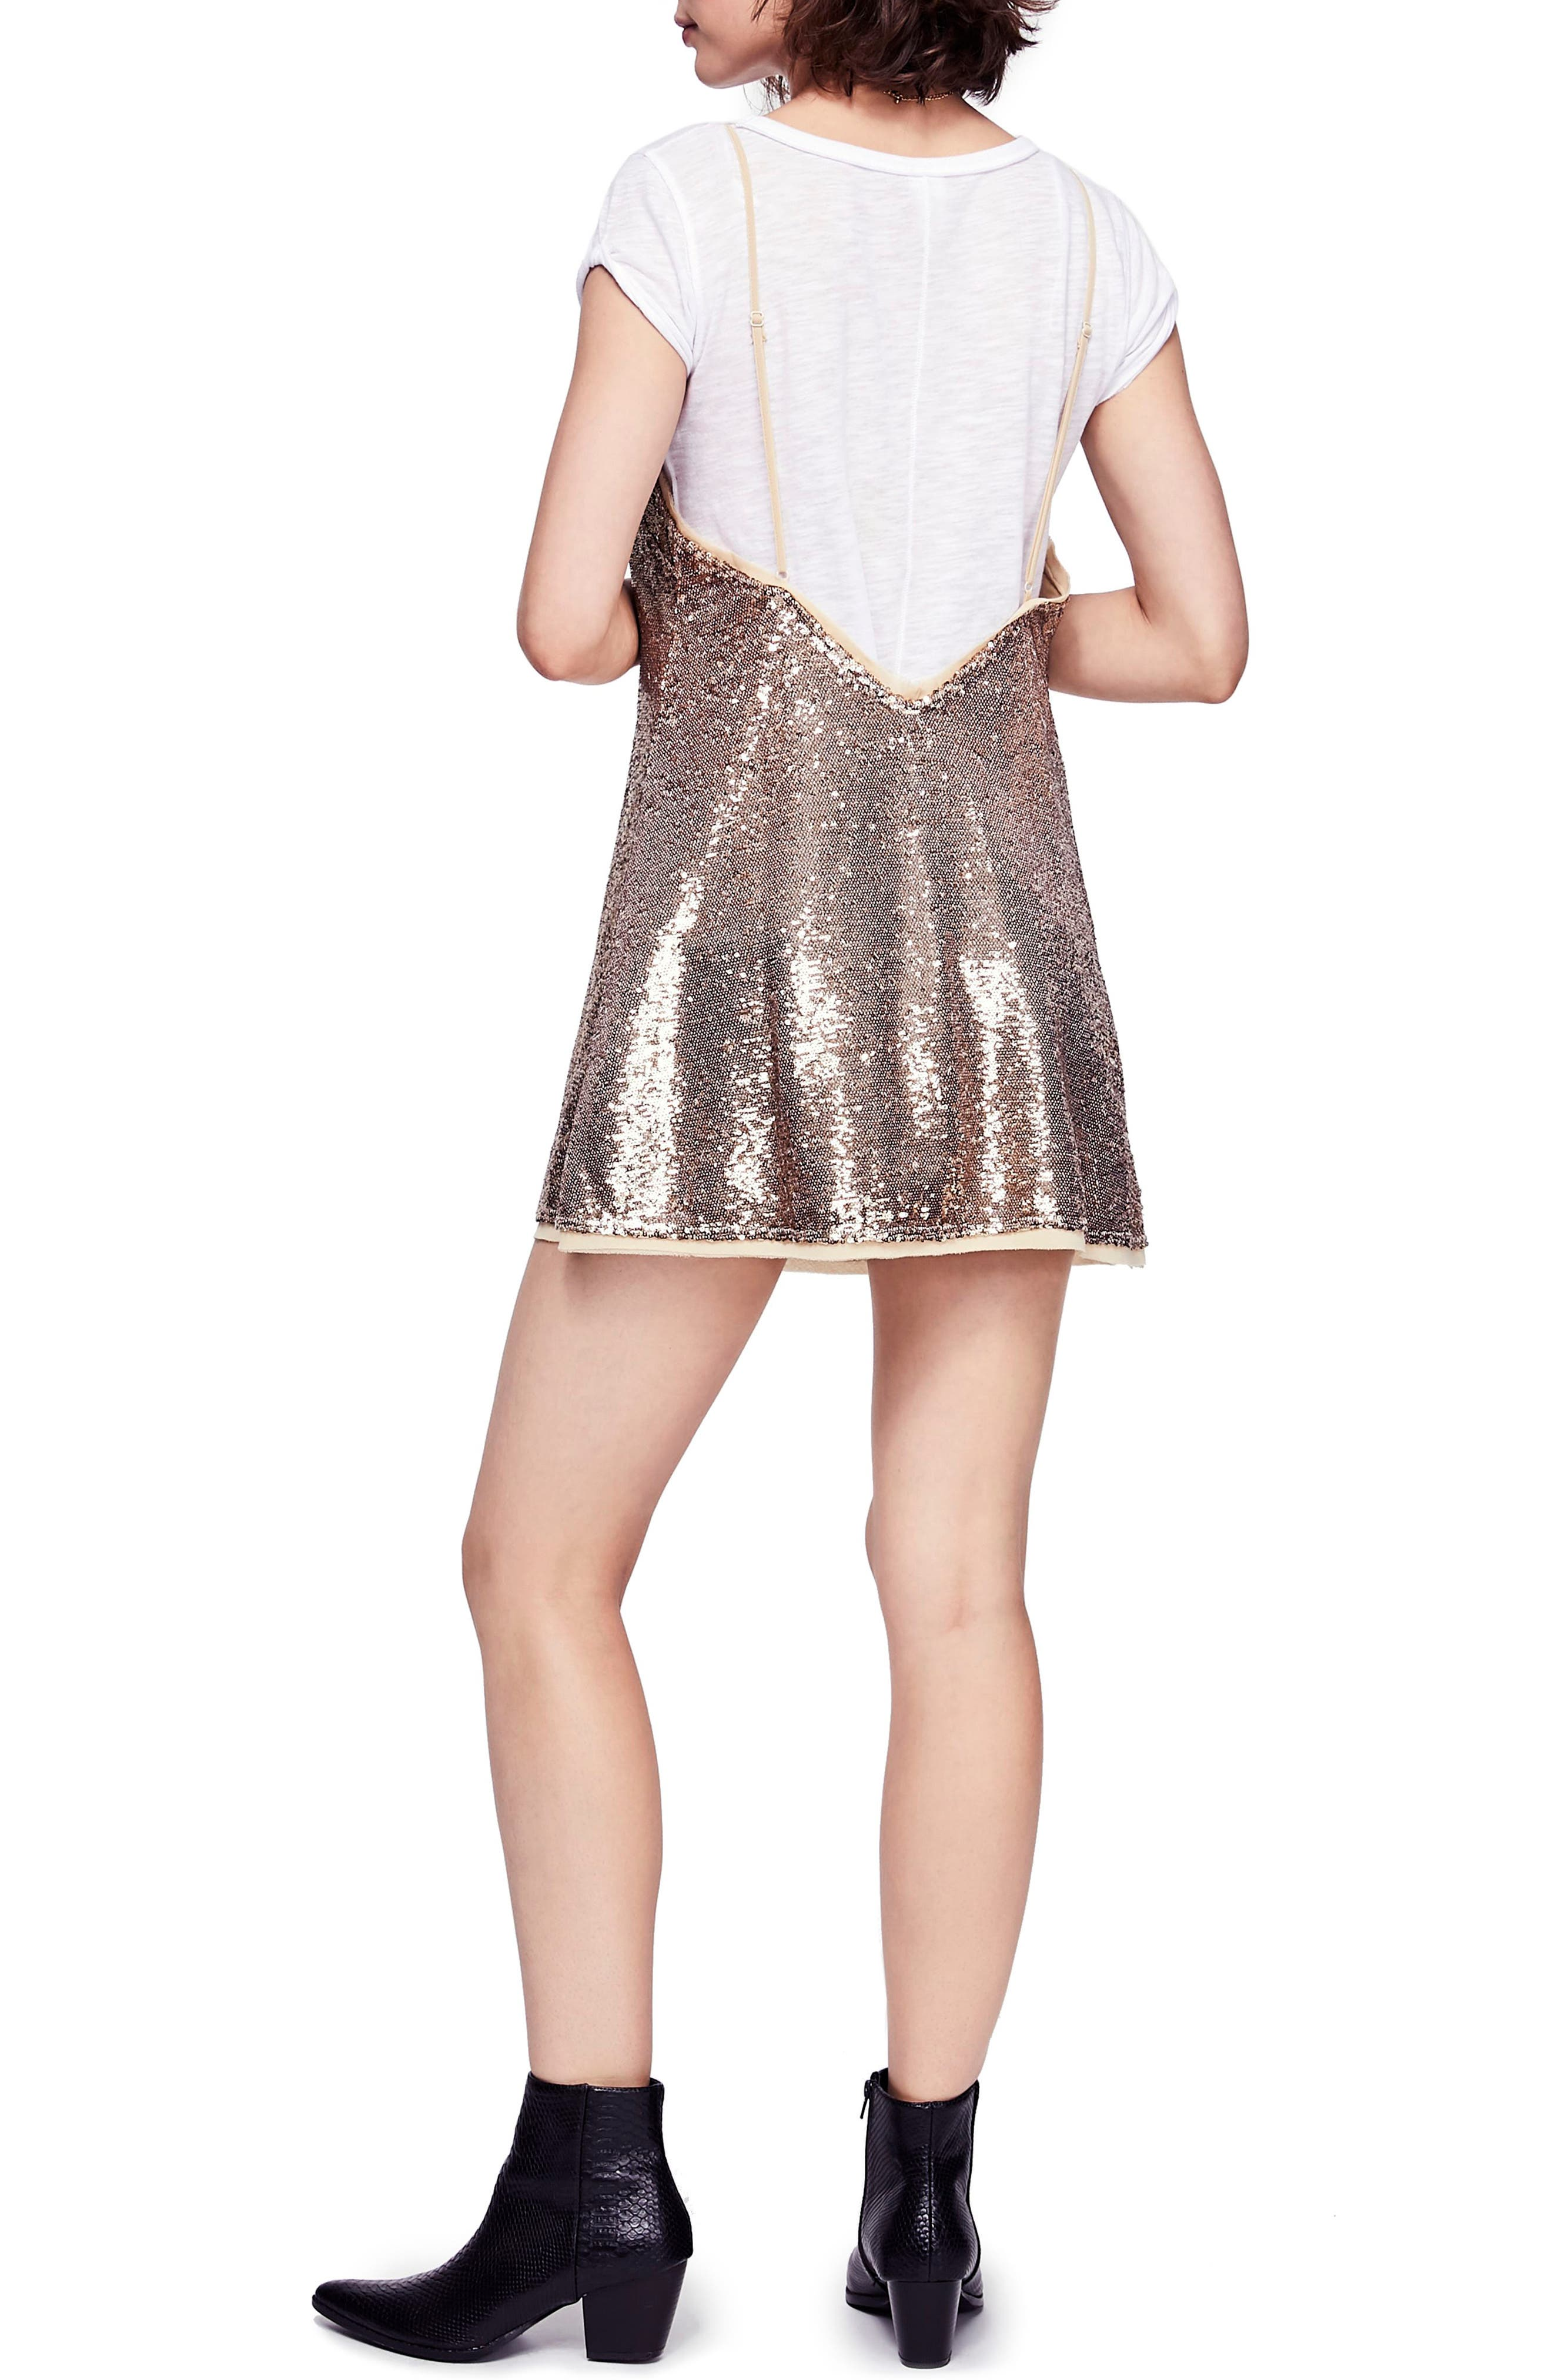 FREE PEOPLE,                             Time to Shine Sequin Slipdress,                             Alternate thumbnail 2, color,                             710